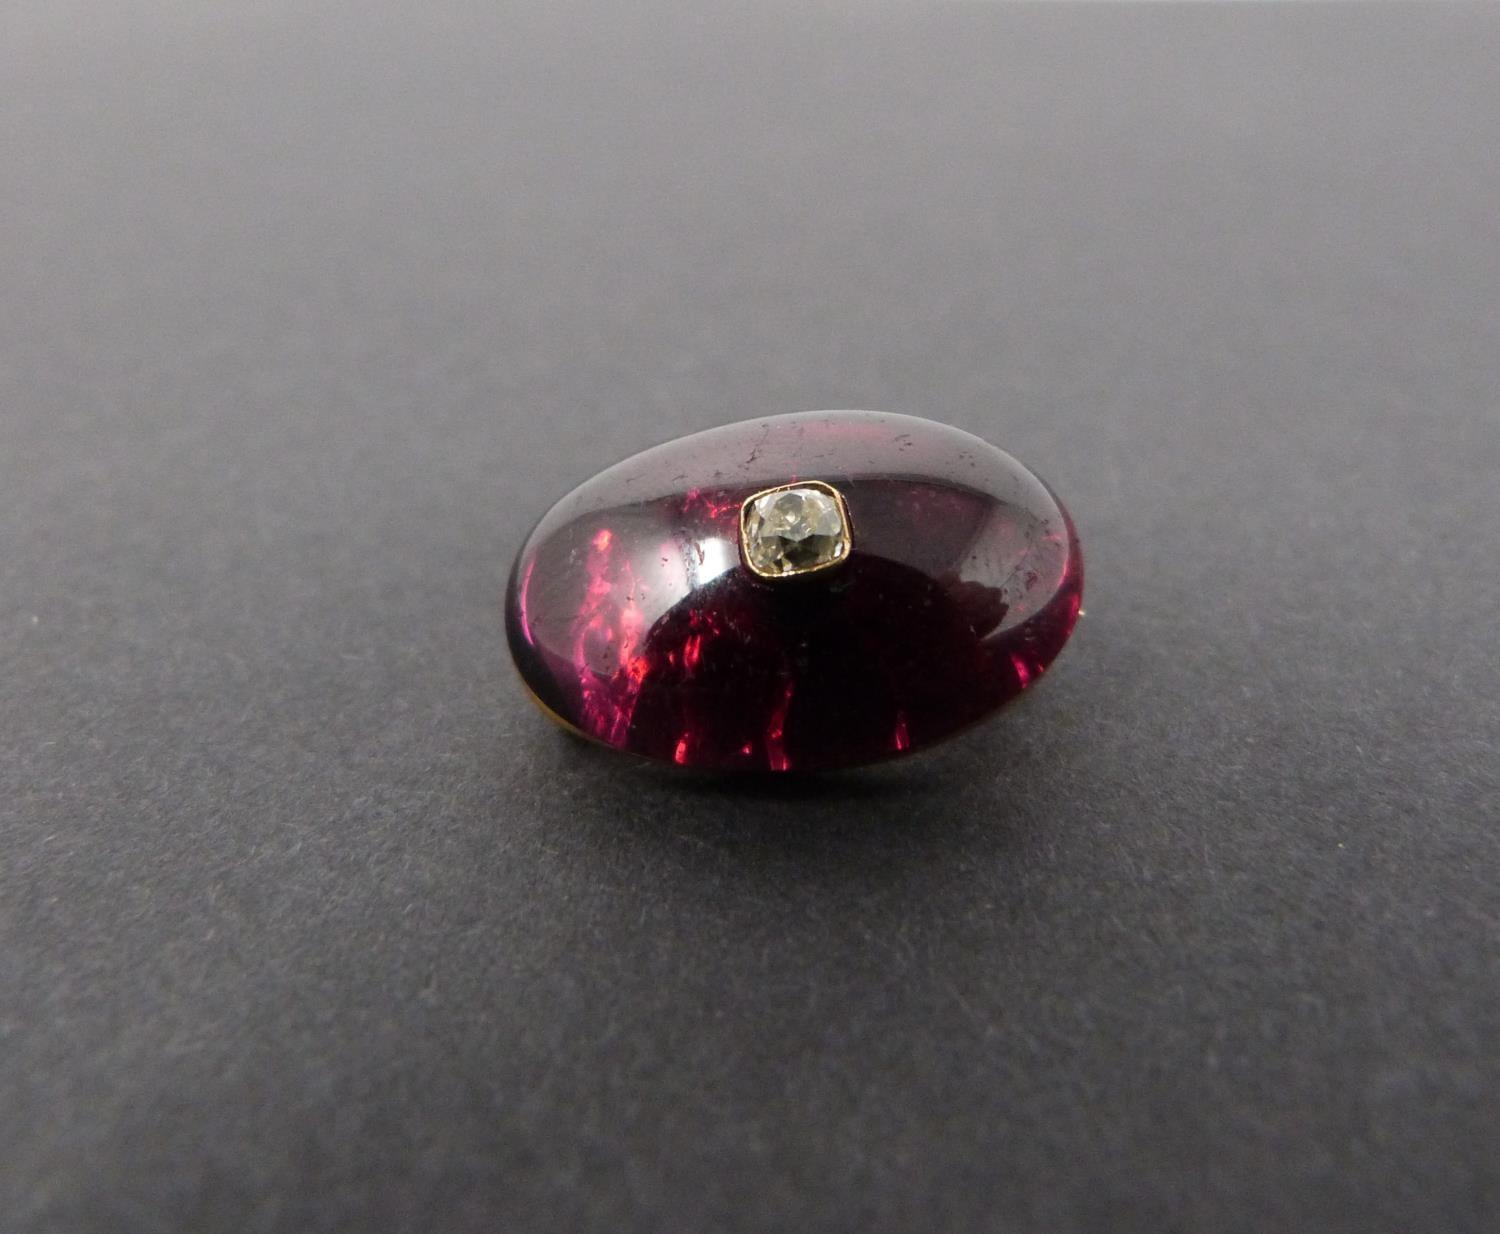 A Georgian/Victorian yellow metal oval garnet brooch inset with diamond, hollow foil backed cabochon - Image 6 of 6